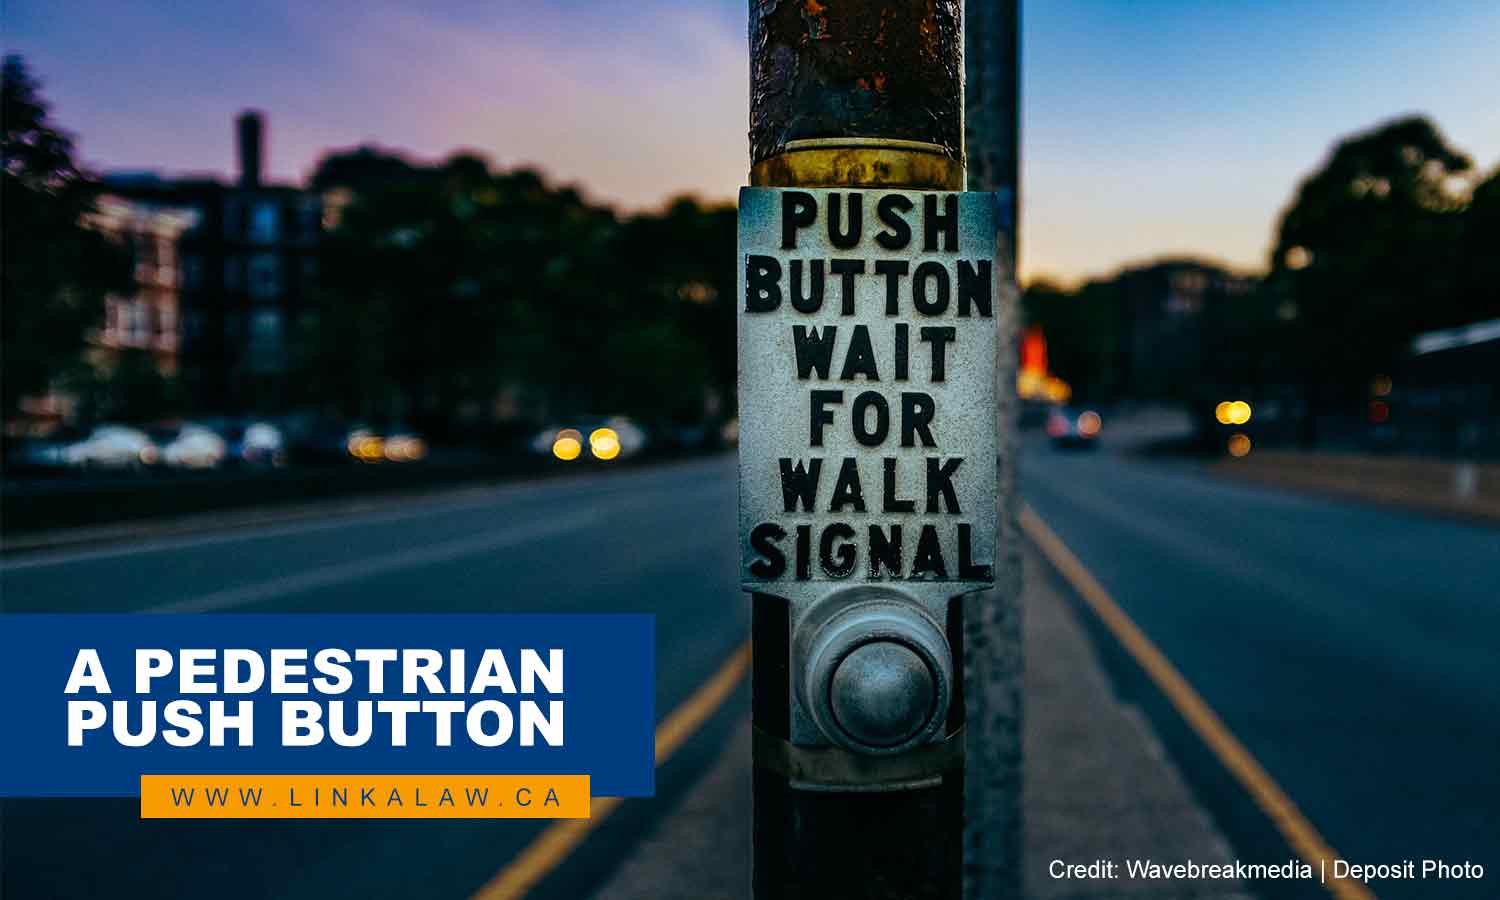 A pedestrian push button